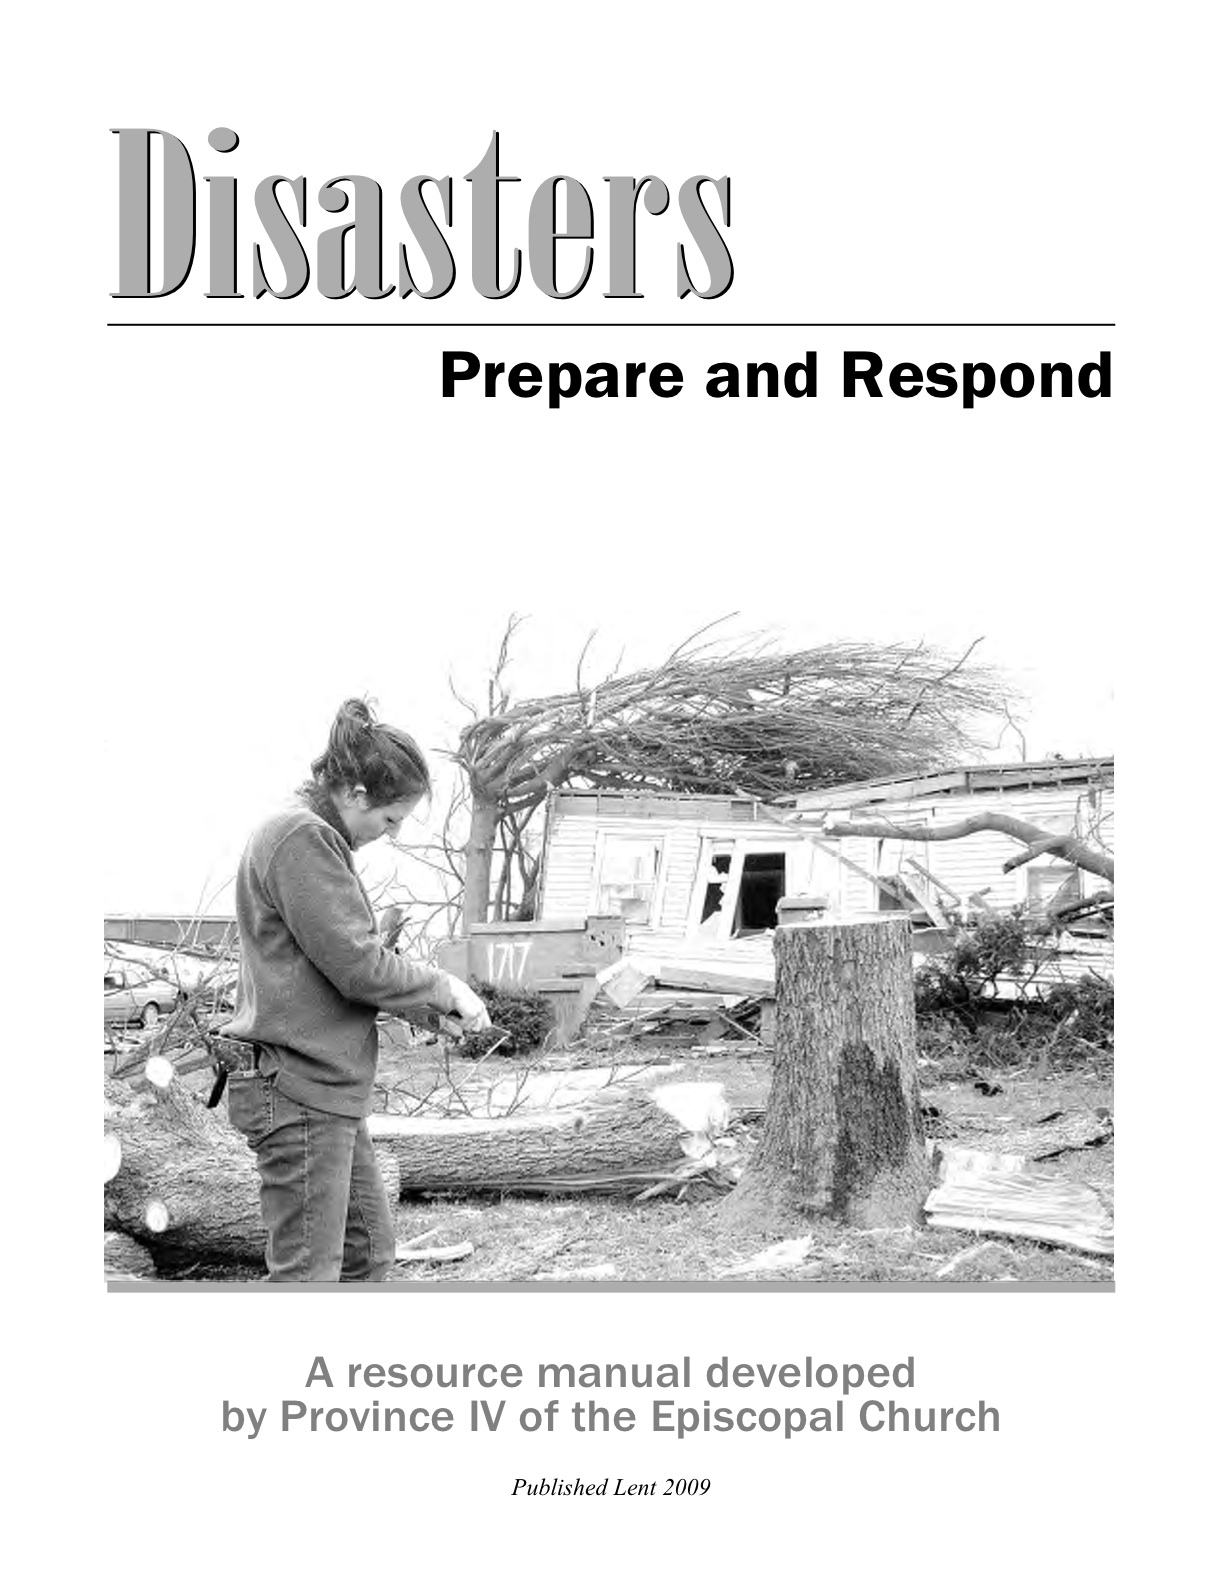 Download Disaster Preparedness Manual Library free